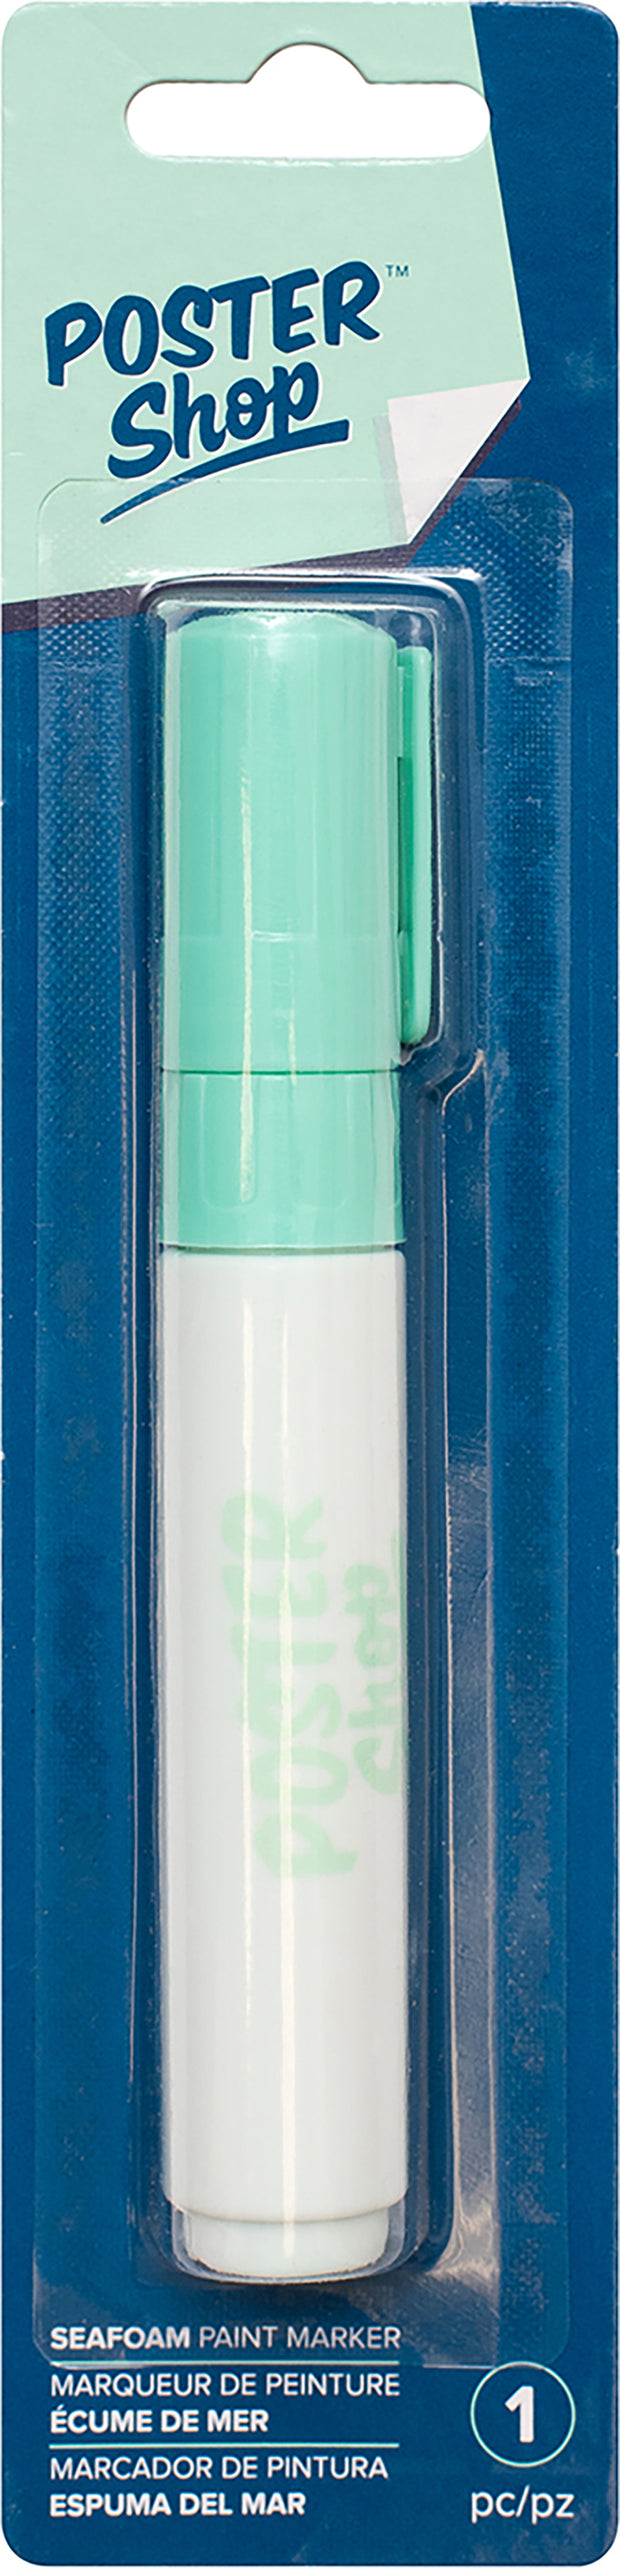 American Crafts Poster Shop Opaque Marker 8mm Chisel Tip-Seafoam